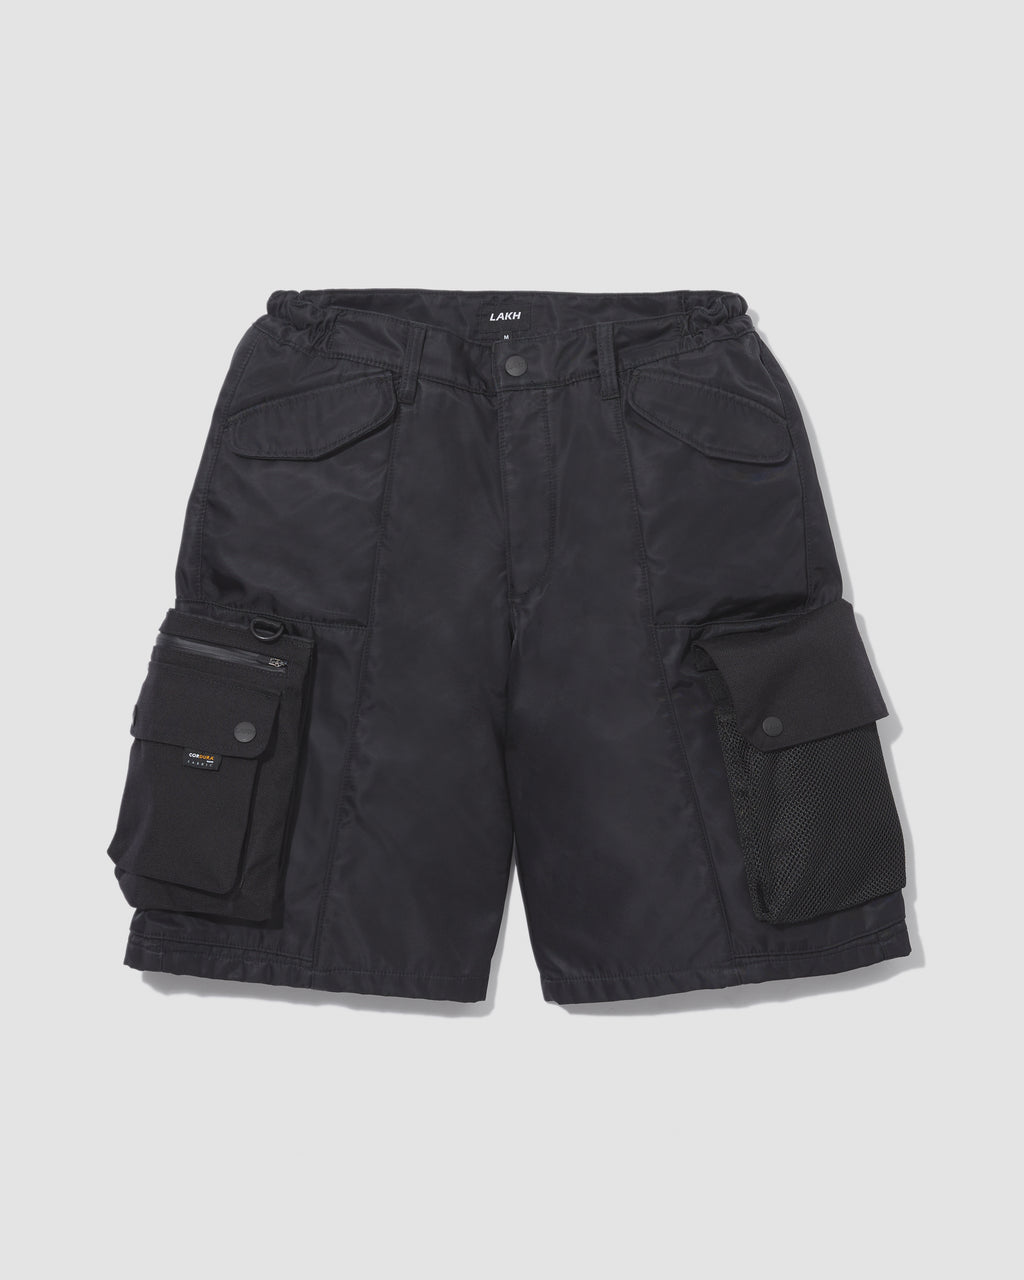 Techwear Shorts - Black